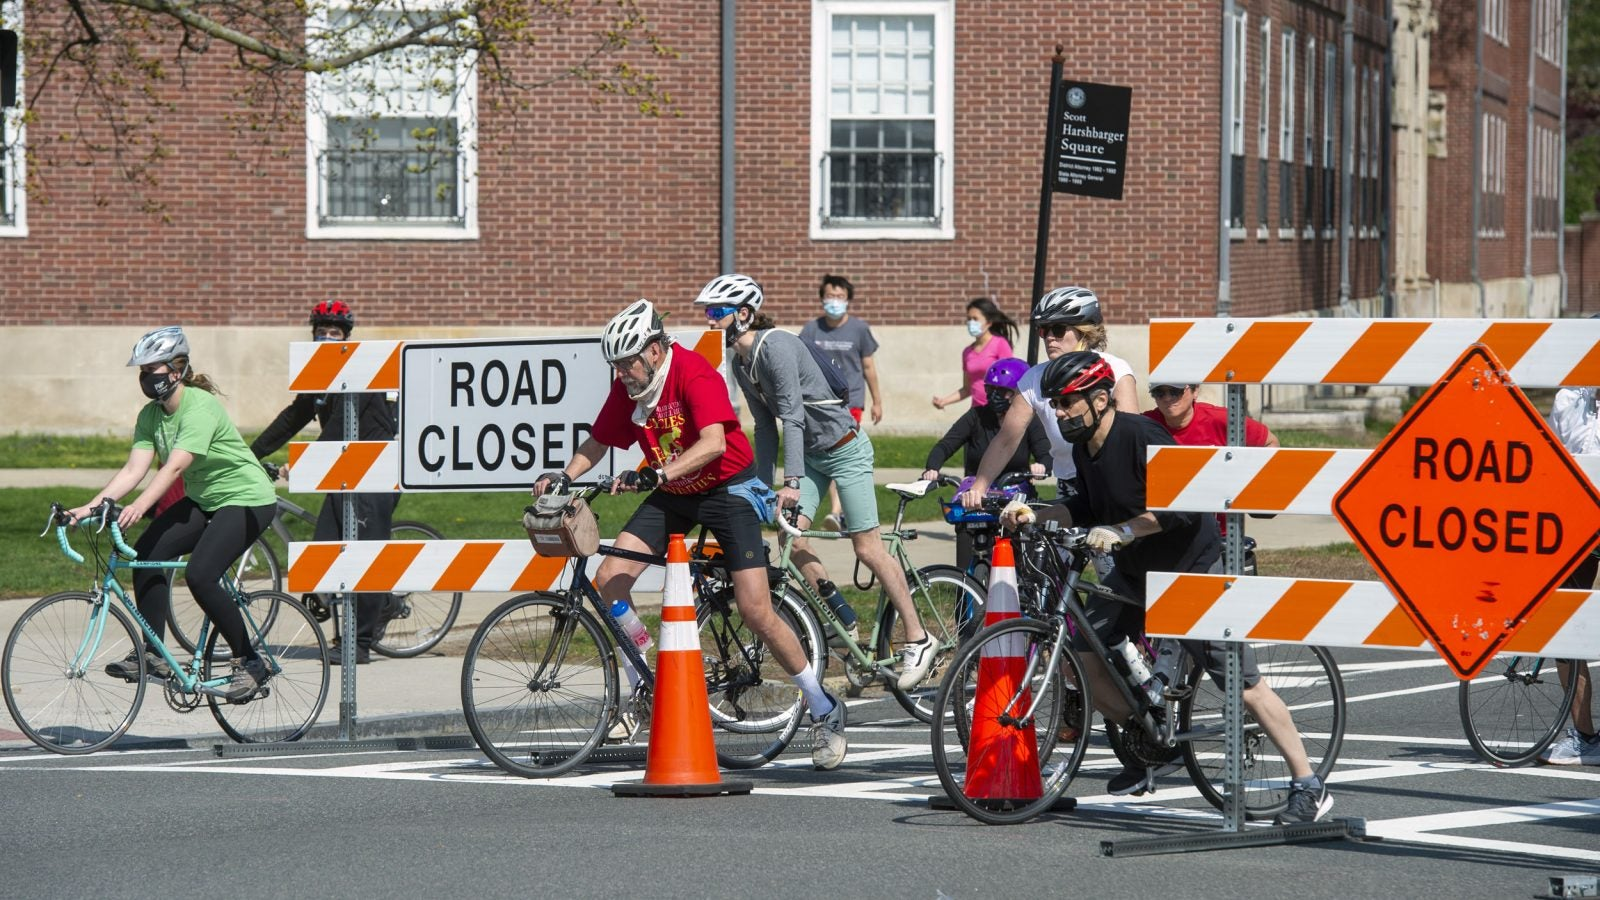 Bicyclists wait for the light at JFK Street next to a barricade on Mem Drive.